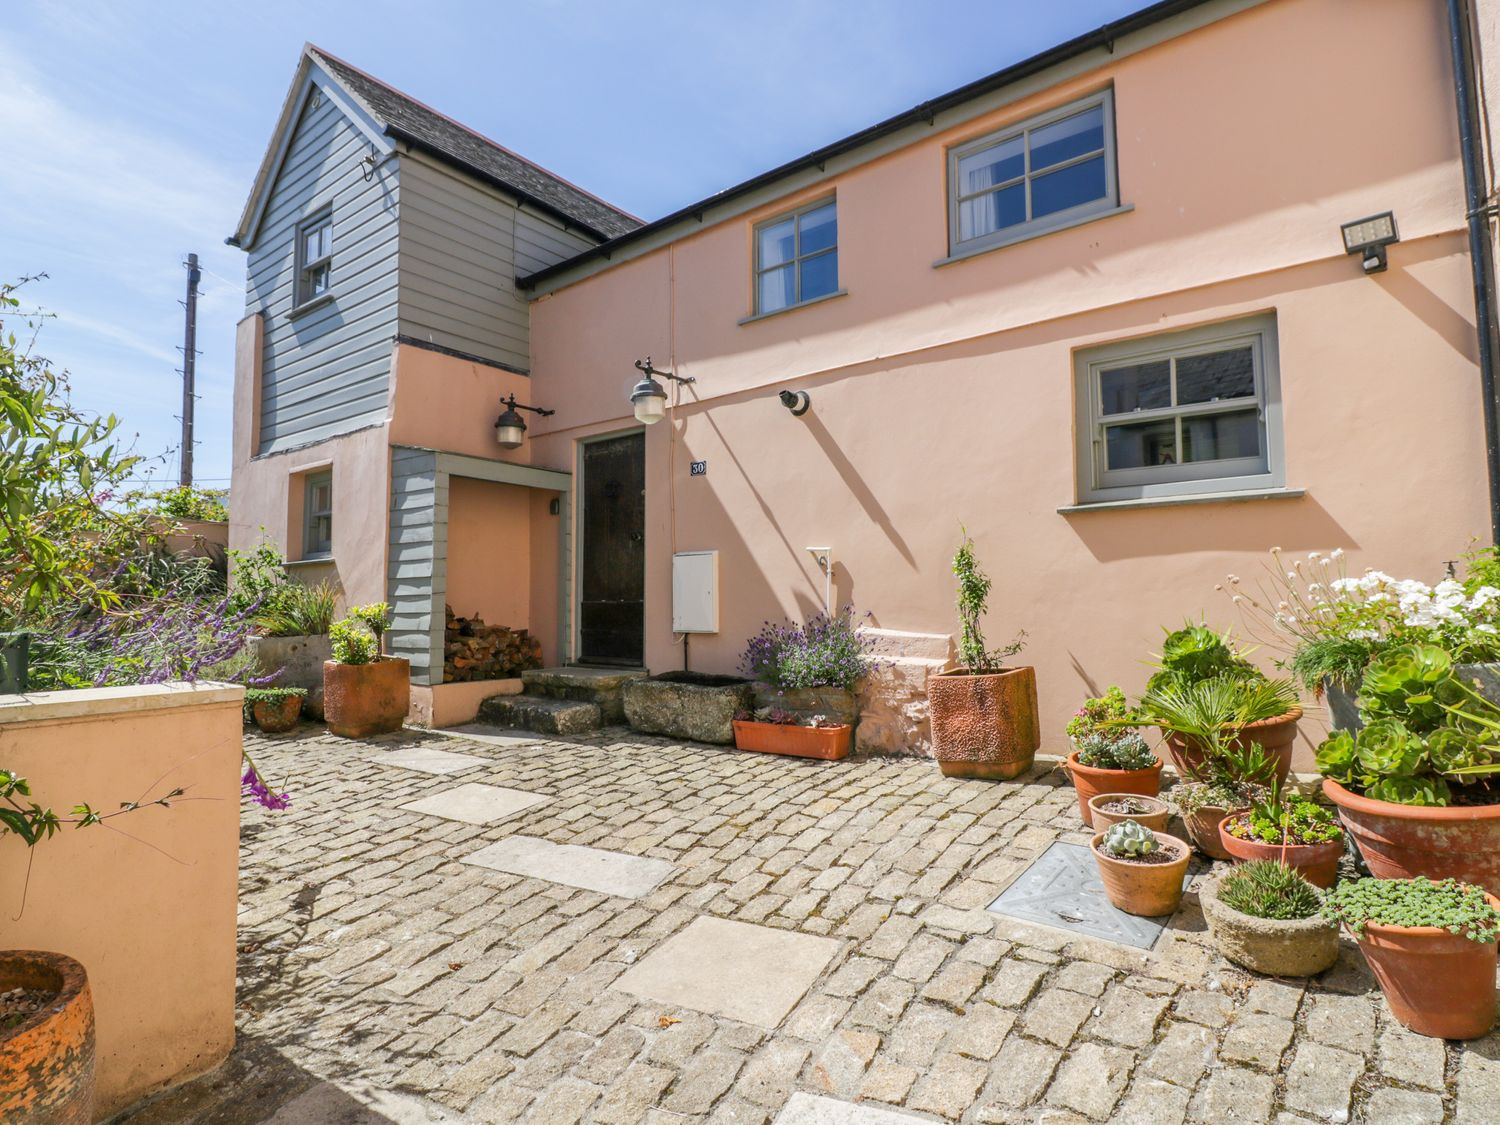 30 The Fradgan - Cornwall - 1013707 - photo 1